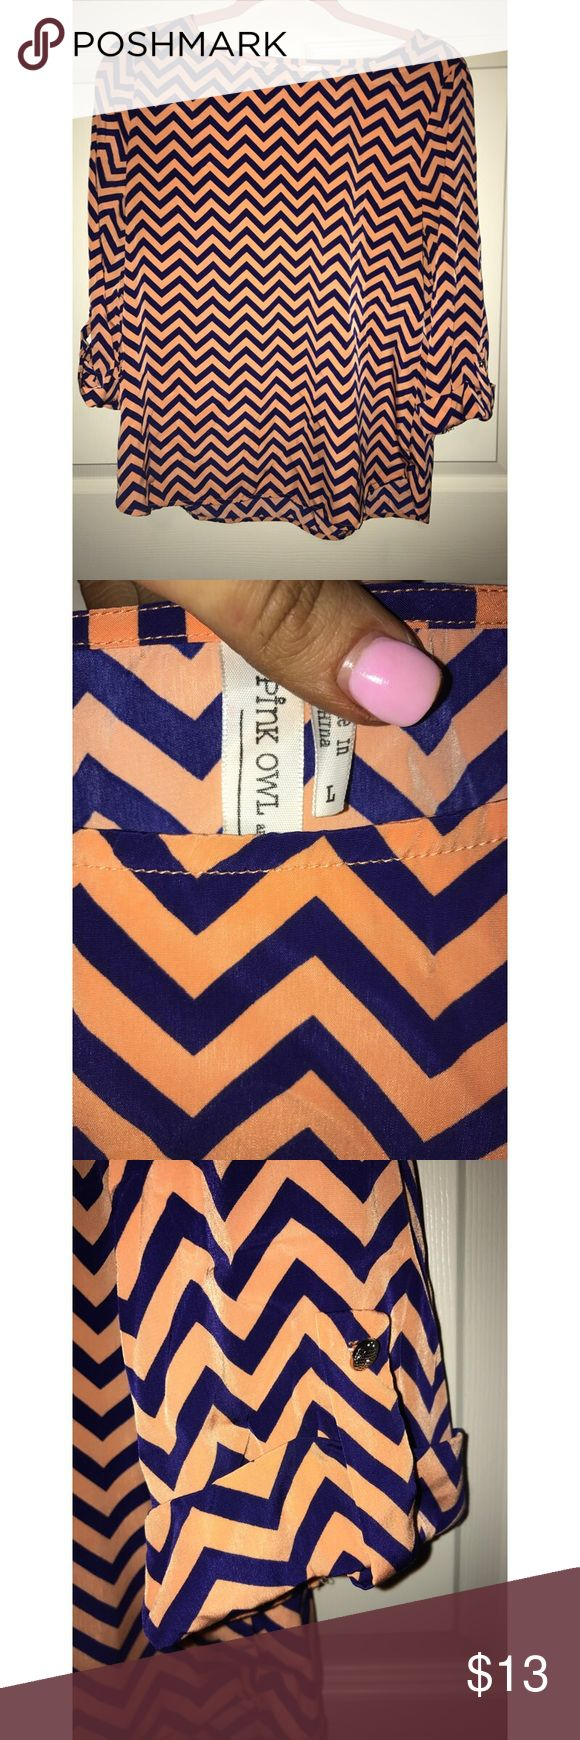 Navy Blue and Orange Chevron Blouse Navy Blue and Orange Chevron Blouse. Yes, it's navy blue!! I know it looks black in the pictures. I got it at a boutique where I live. Been maybe twice. Looks new Pink Owl Tops Blouses